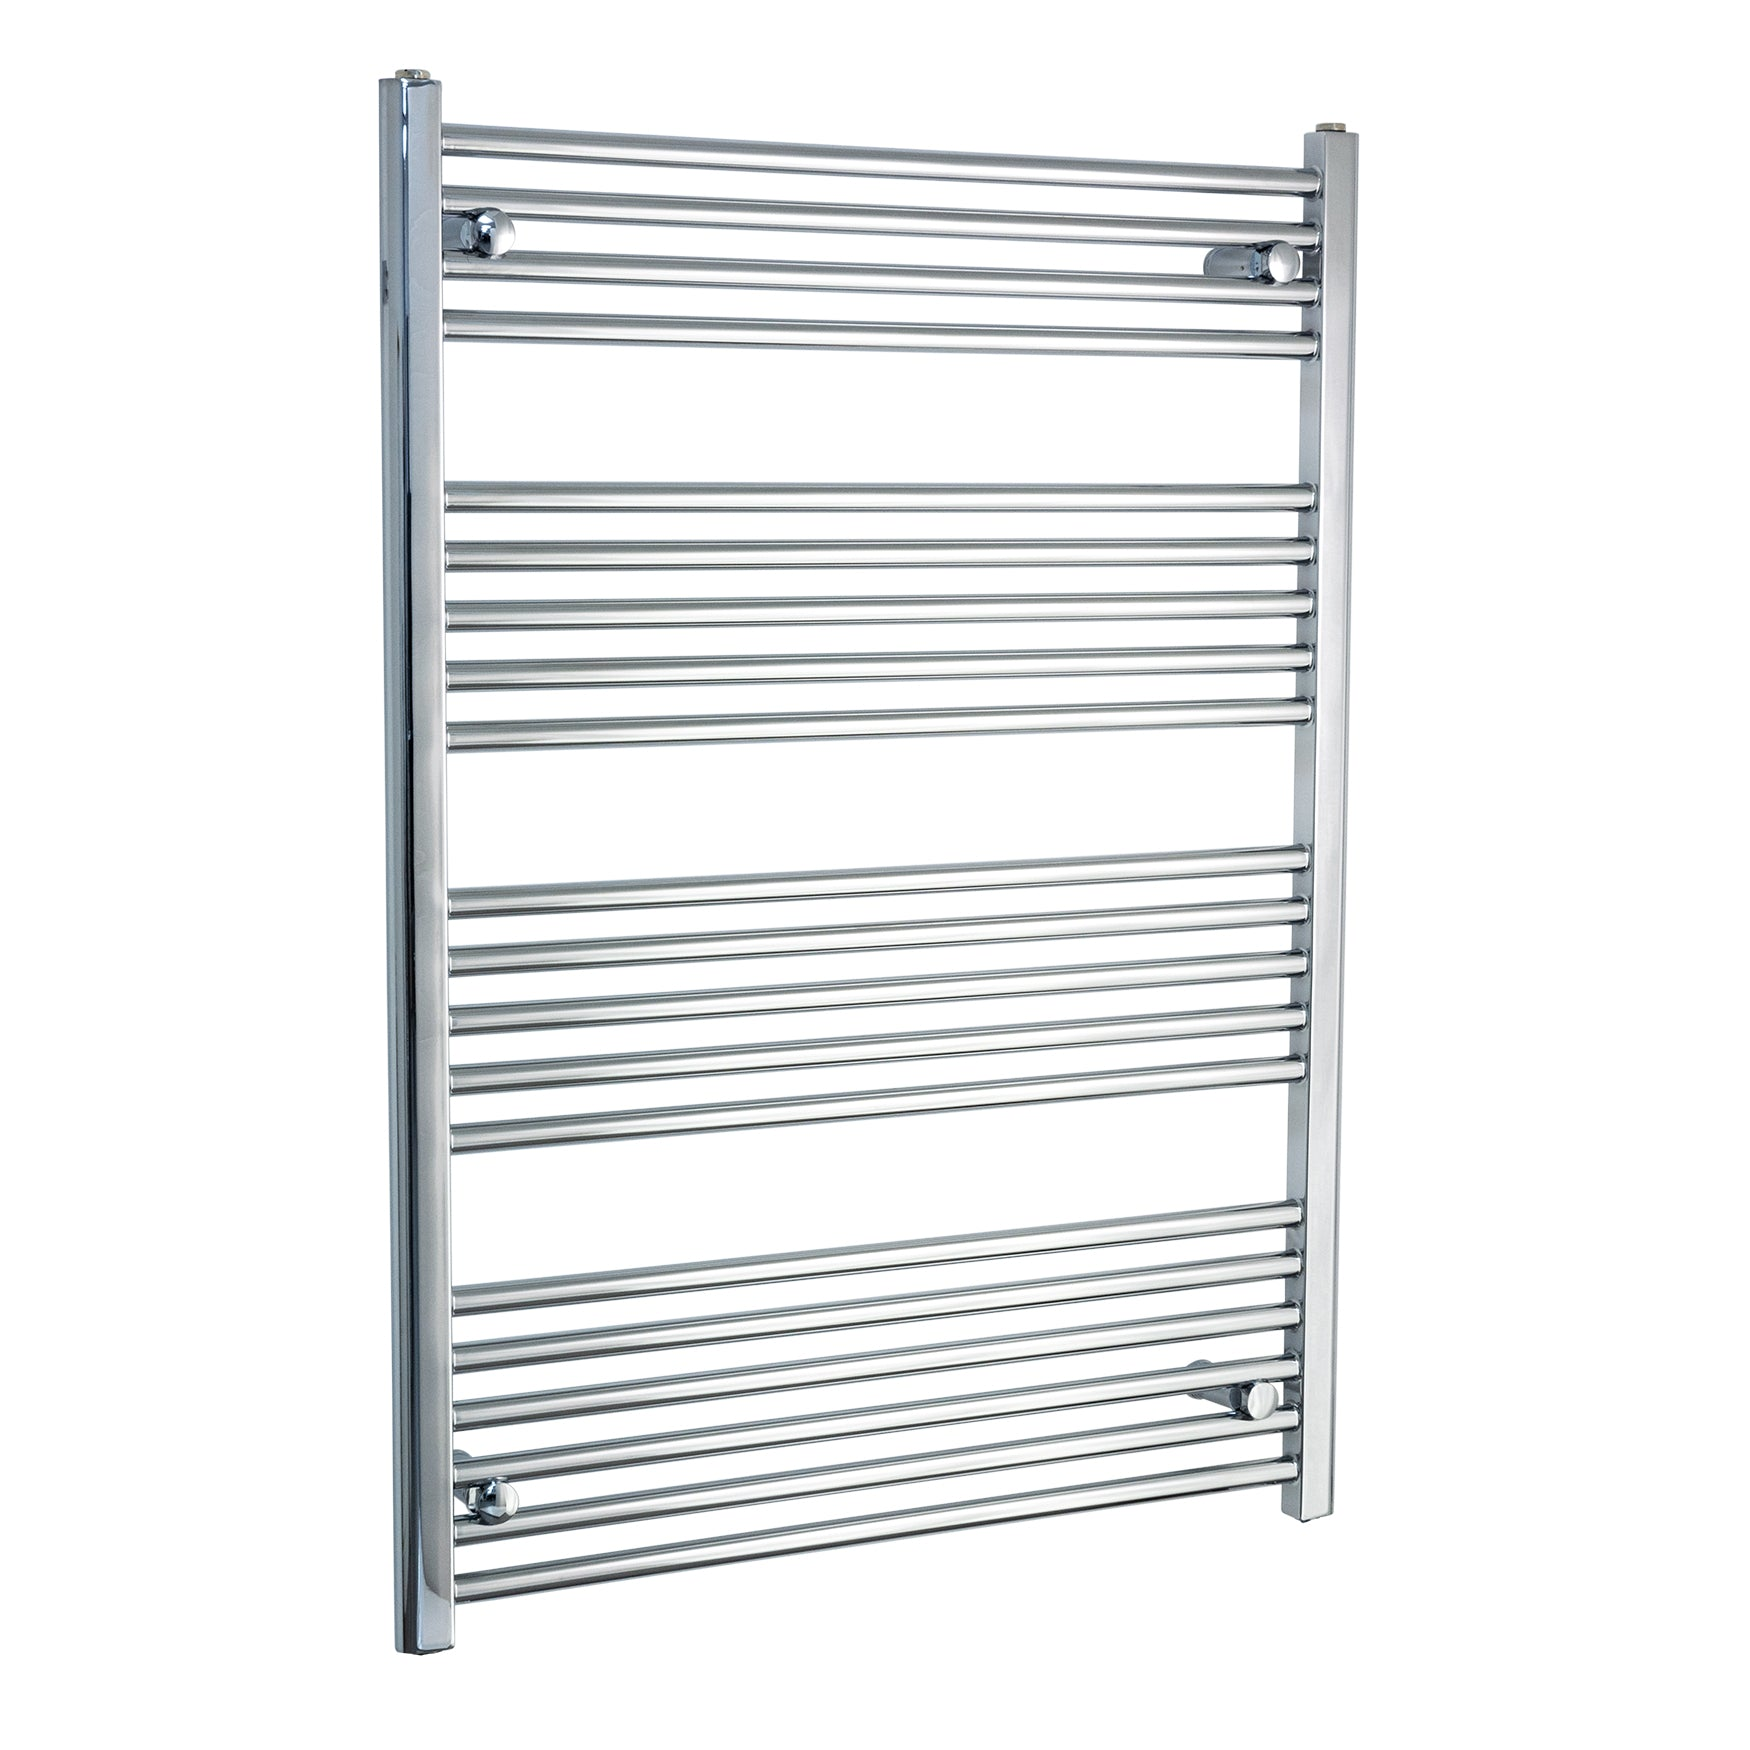 800mm Wide 1100mm High Chrome Towel Rail Radiator